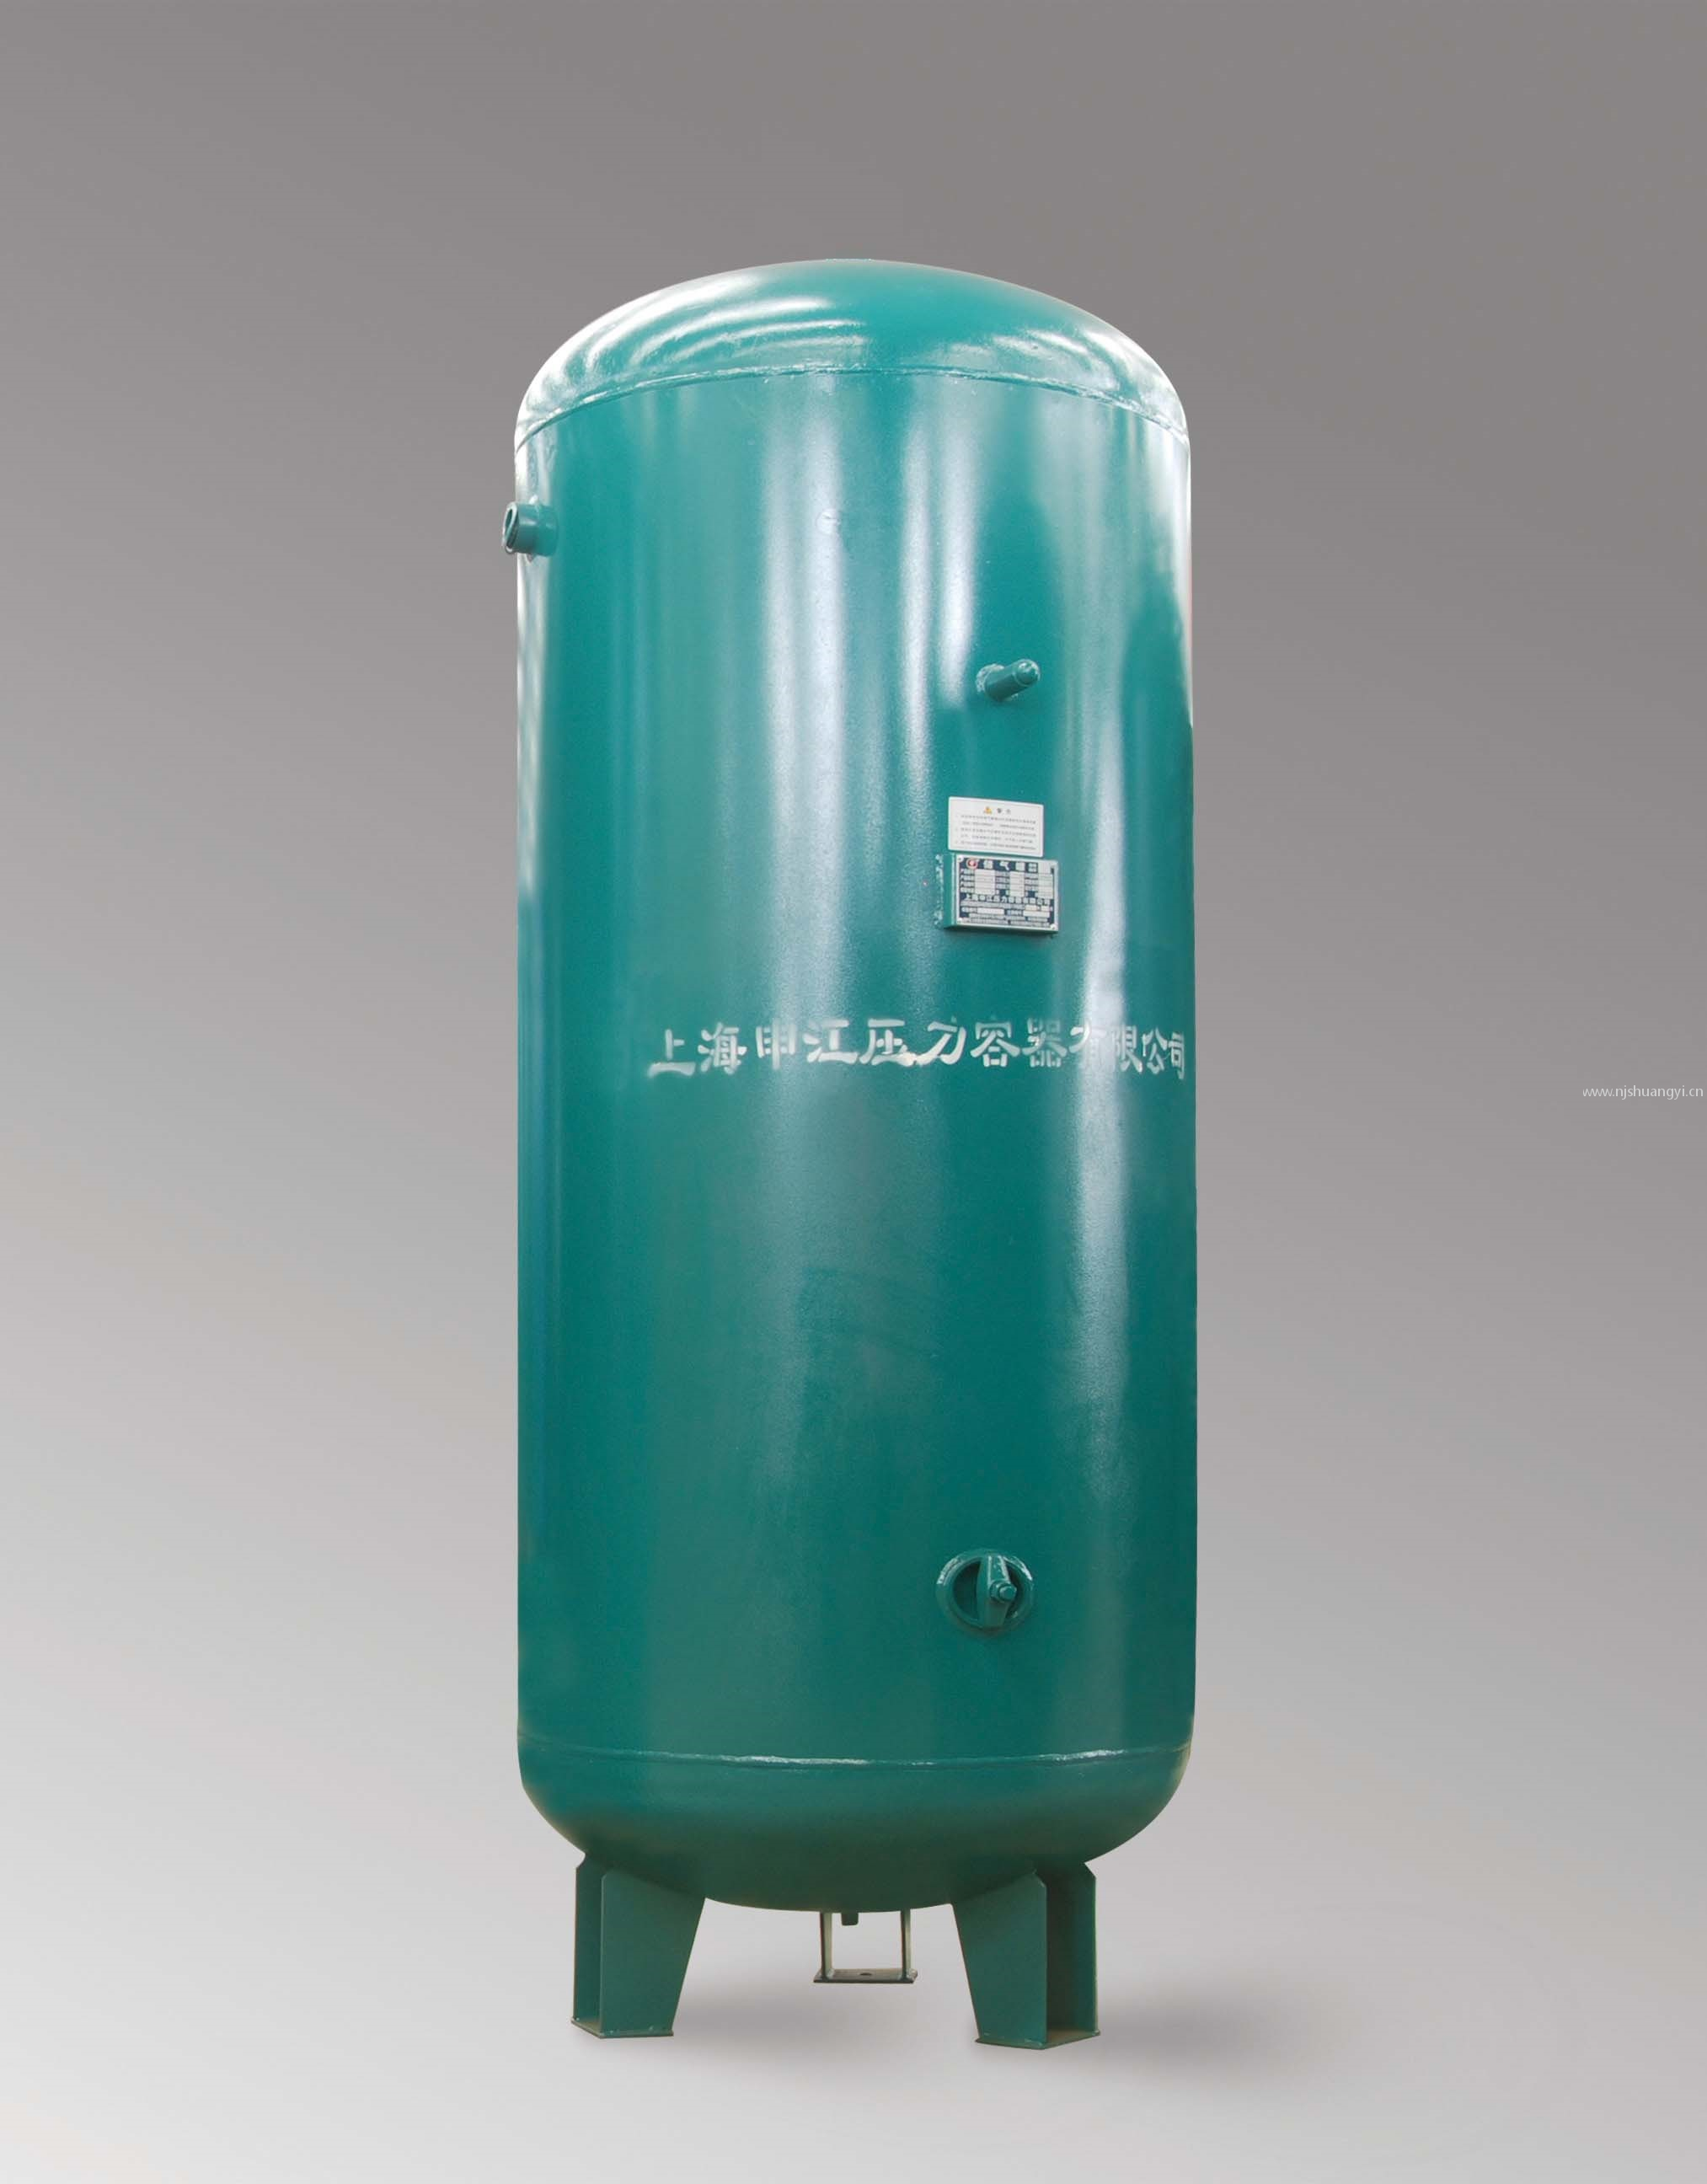 Air compressor storage tank role, although you know, but not necessarily comprehensive!